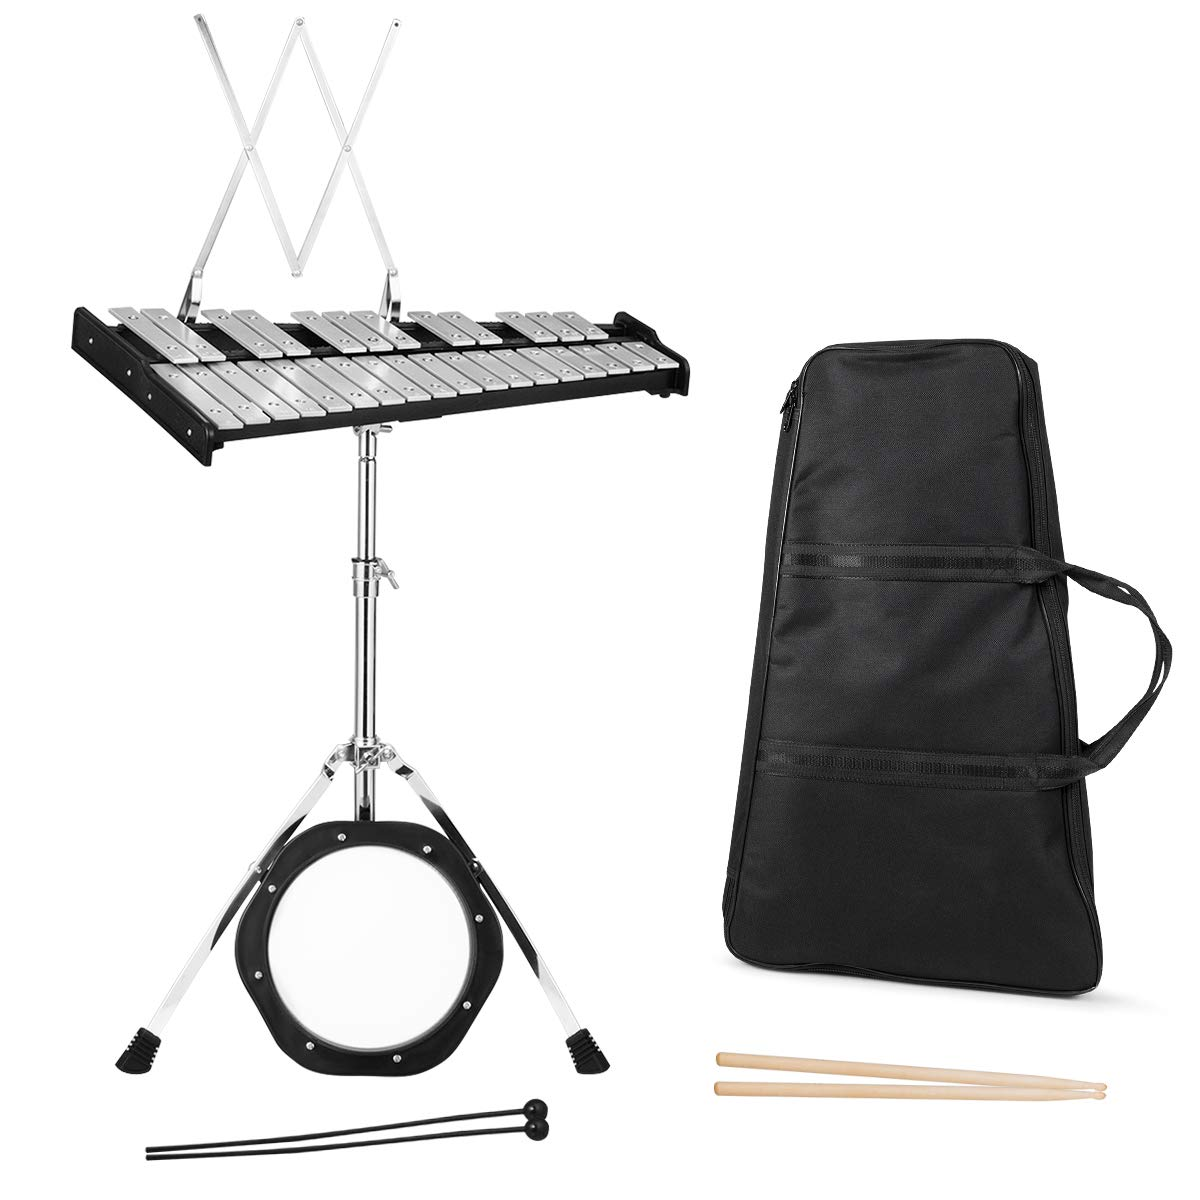 Giantex Percussion Glockenspiel Bell Kit 30 Notes, with Electroplated Adjustable Height Frame, Music Stand, an 8'' Practice Pad, and a Pair of Bell Mallets & Wooden Drumsticks, Carrying Bag